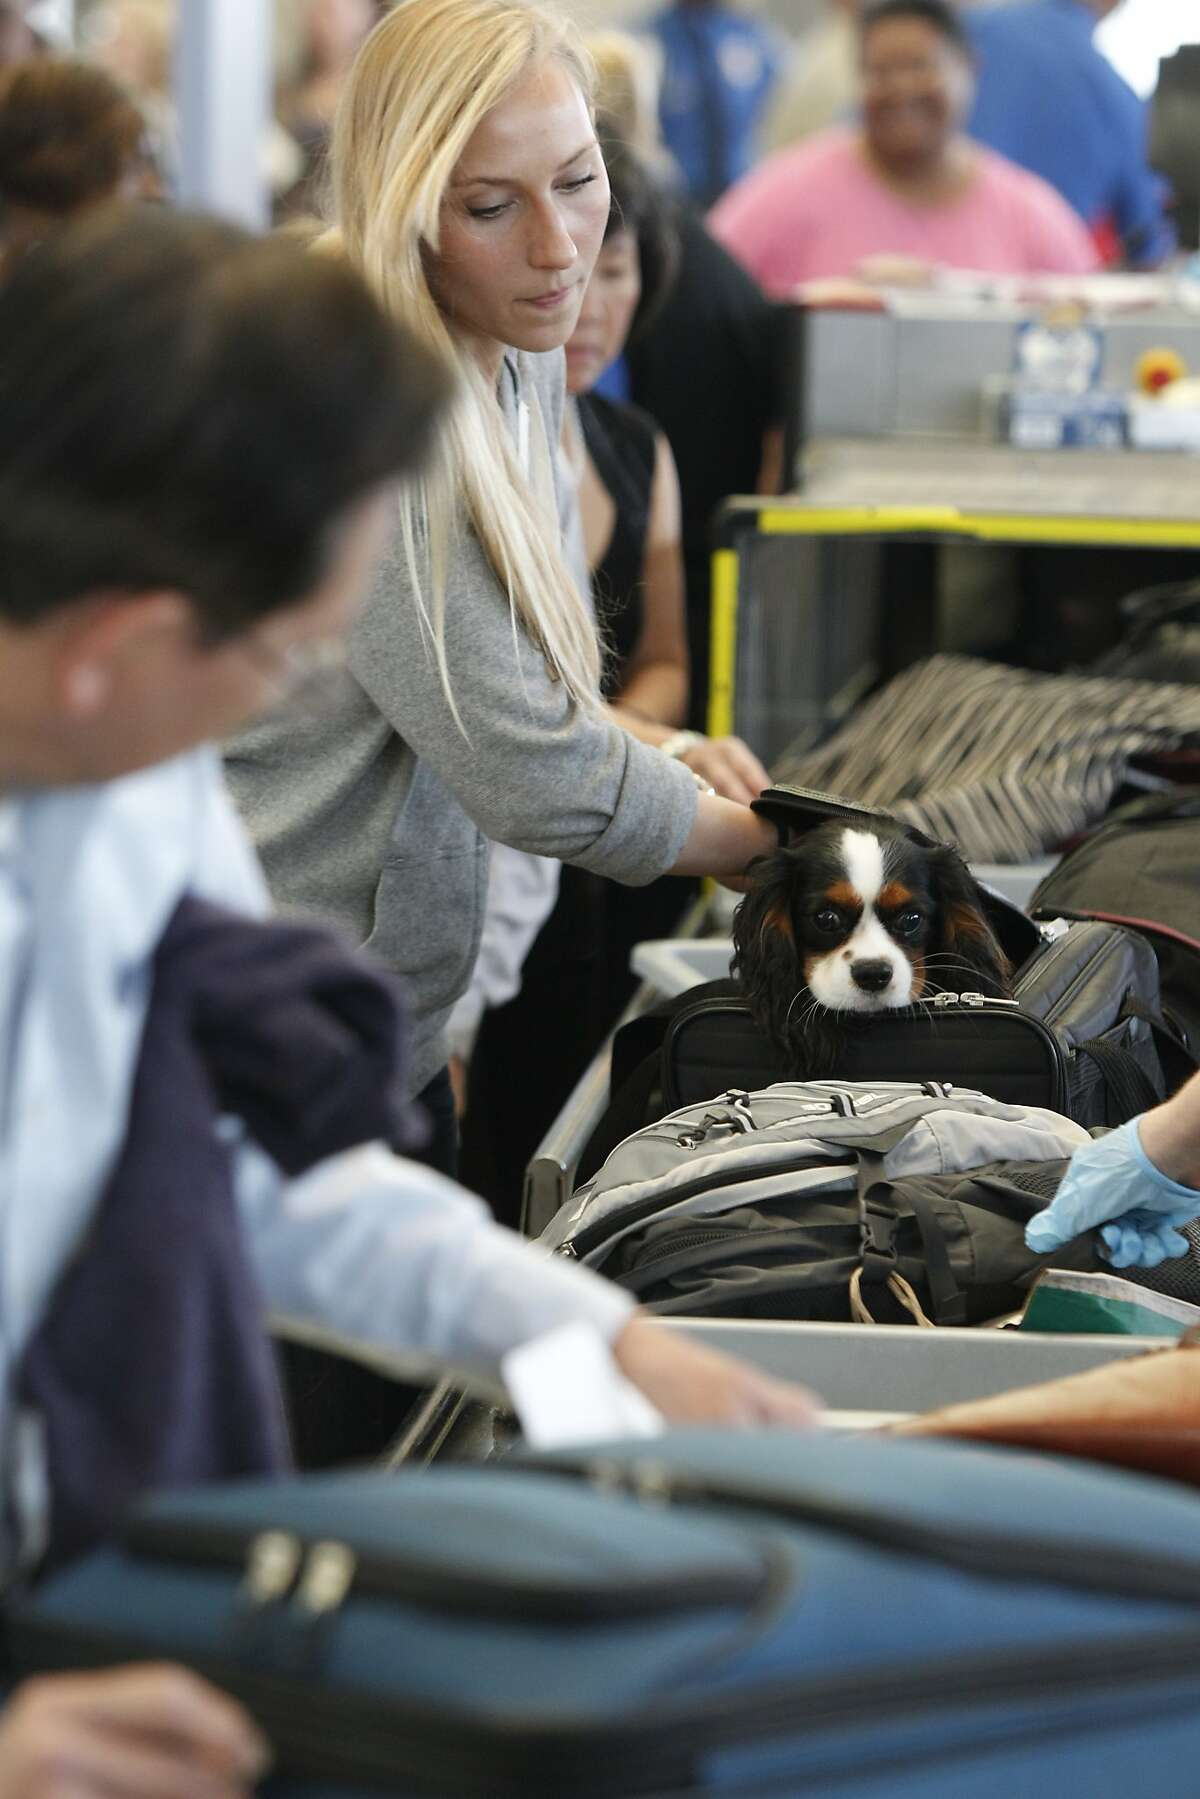 Since July, travelers at 10 airports have been removing electronics larger than cellphones, as part of the Transportation Security Administration's security enhancement plan. Now, the rest of the country will join them.